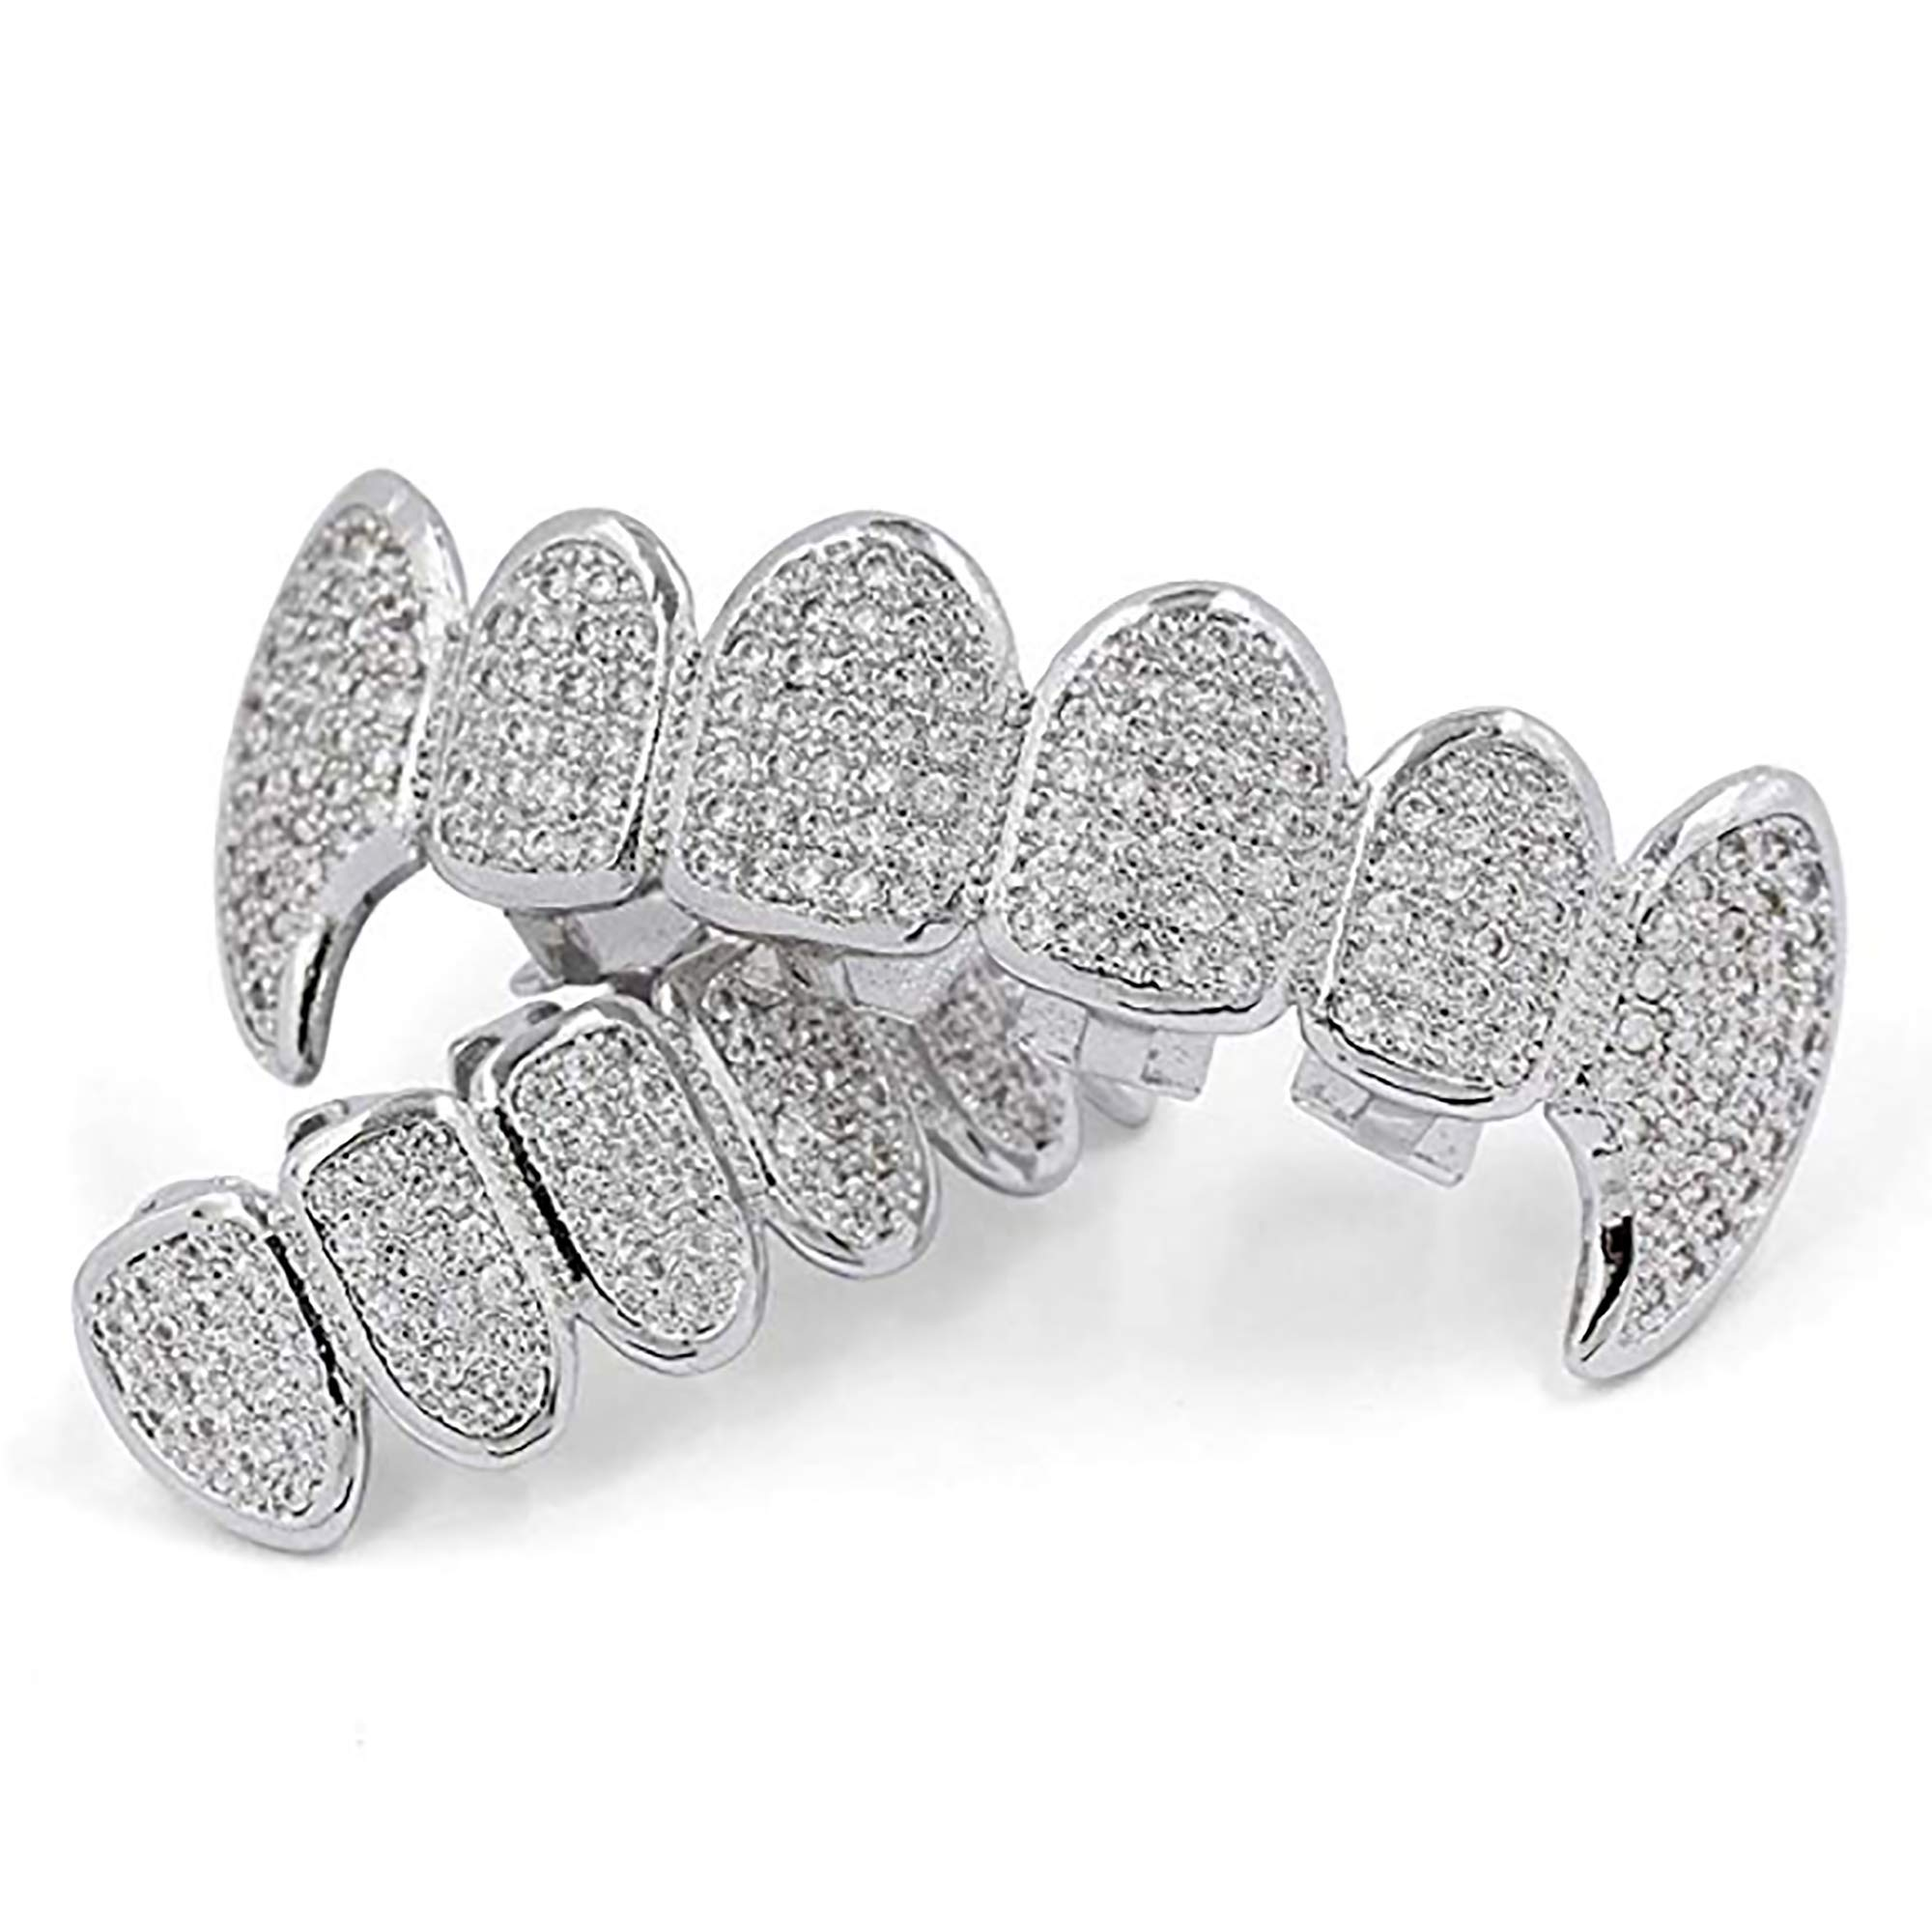 18K White Gold Plated CZ Cluster Custom Slugs Top Bottom Fangs Vampire Grillz Mouth Teeth Grills Set - Grillz, Teeth Cap, Iced Out Grillz (Top & Bottom Set) by Zilver